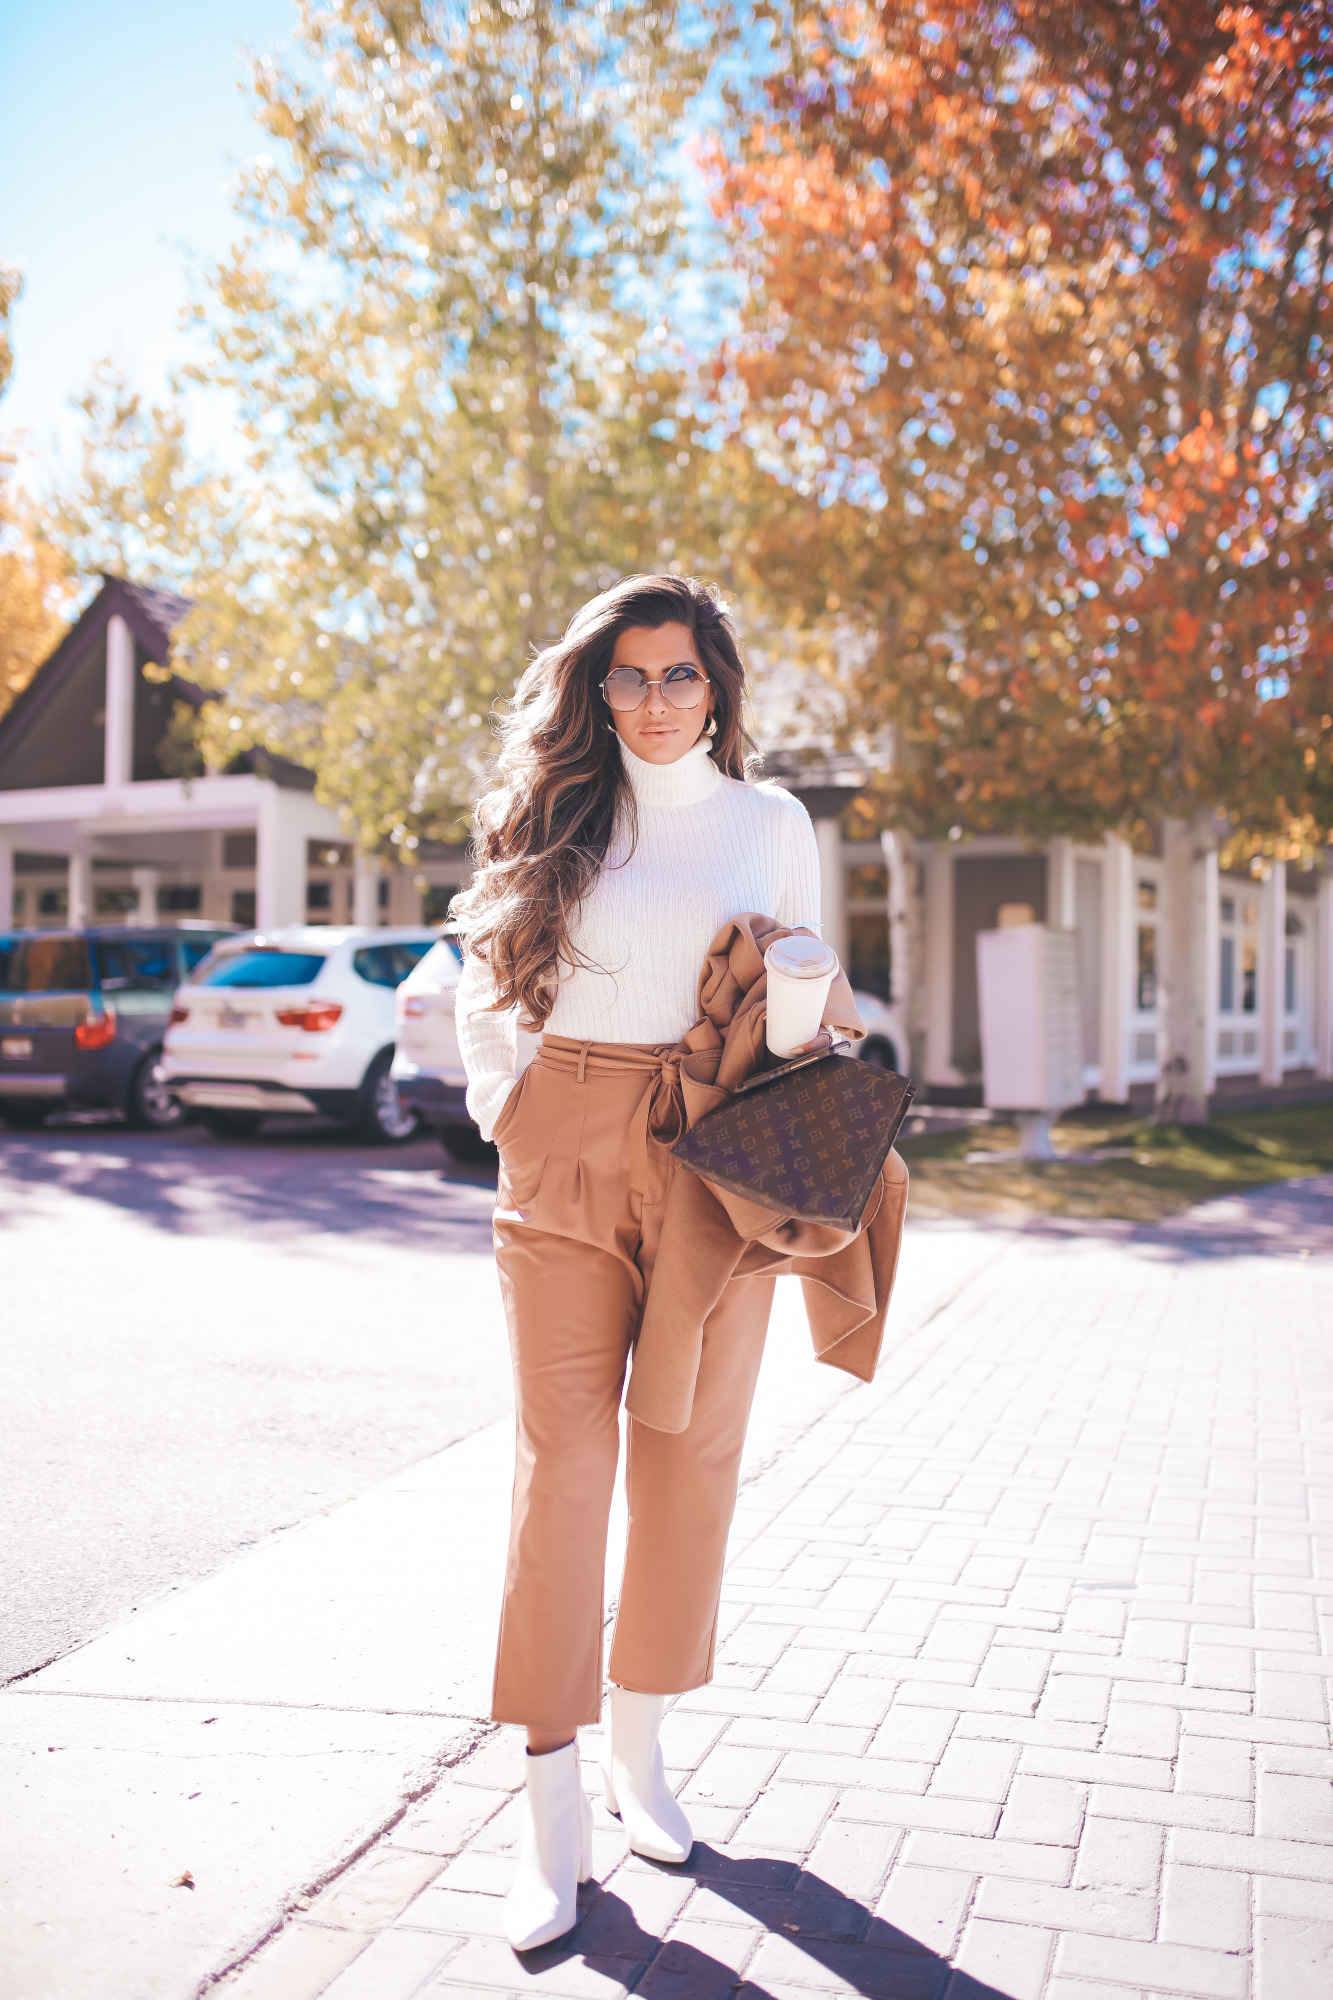 fall fashion outifit ideas pinterest 2020, fall fashion express 2020, fall outfits white booties, emily gemma |Fall Outfits by popular US fashion blog, The Sweetest Thing: image of Emily Gemma outside in Jackson Hole and wearing a Express Wide Ribbed Turtleneck Sweater, Express Super High Waisted Vegan Leather Belted Ankle Pant, Express Snakeskin Textured Block Heel Booties, Express Small Twisted Hoop Earrings, Express Belted Wrap Front Wool Coat and Express Octagon Cut-Out Sunglasses.